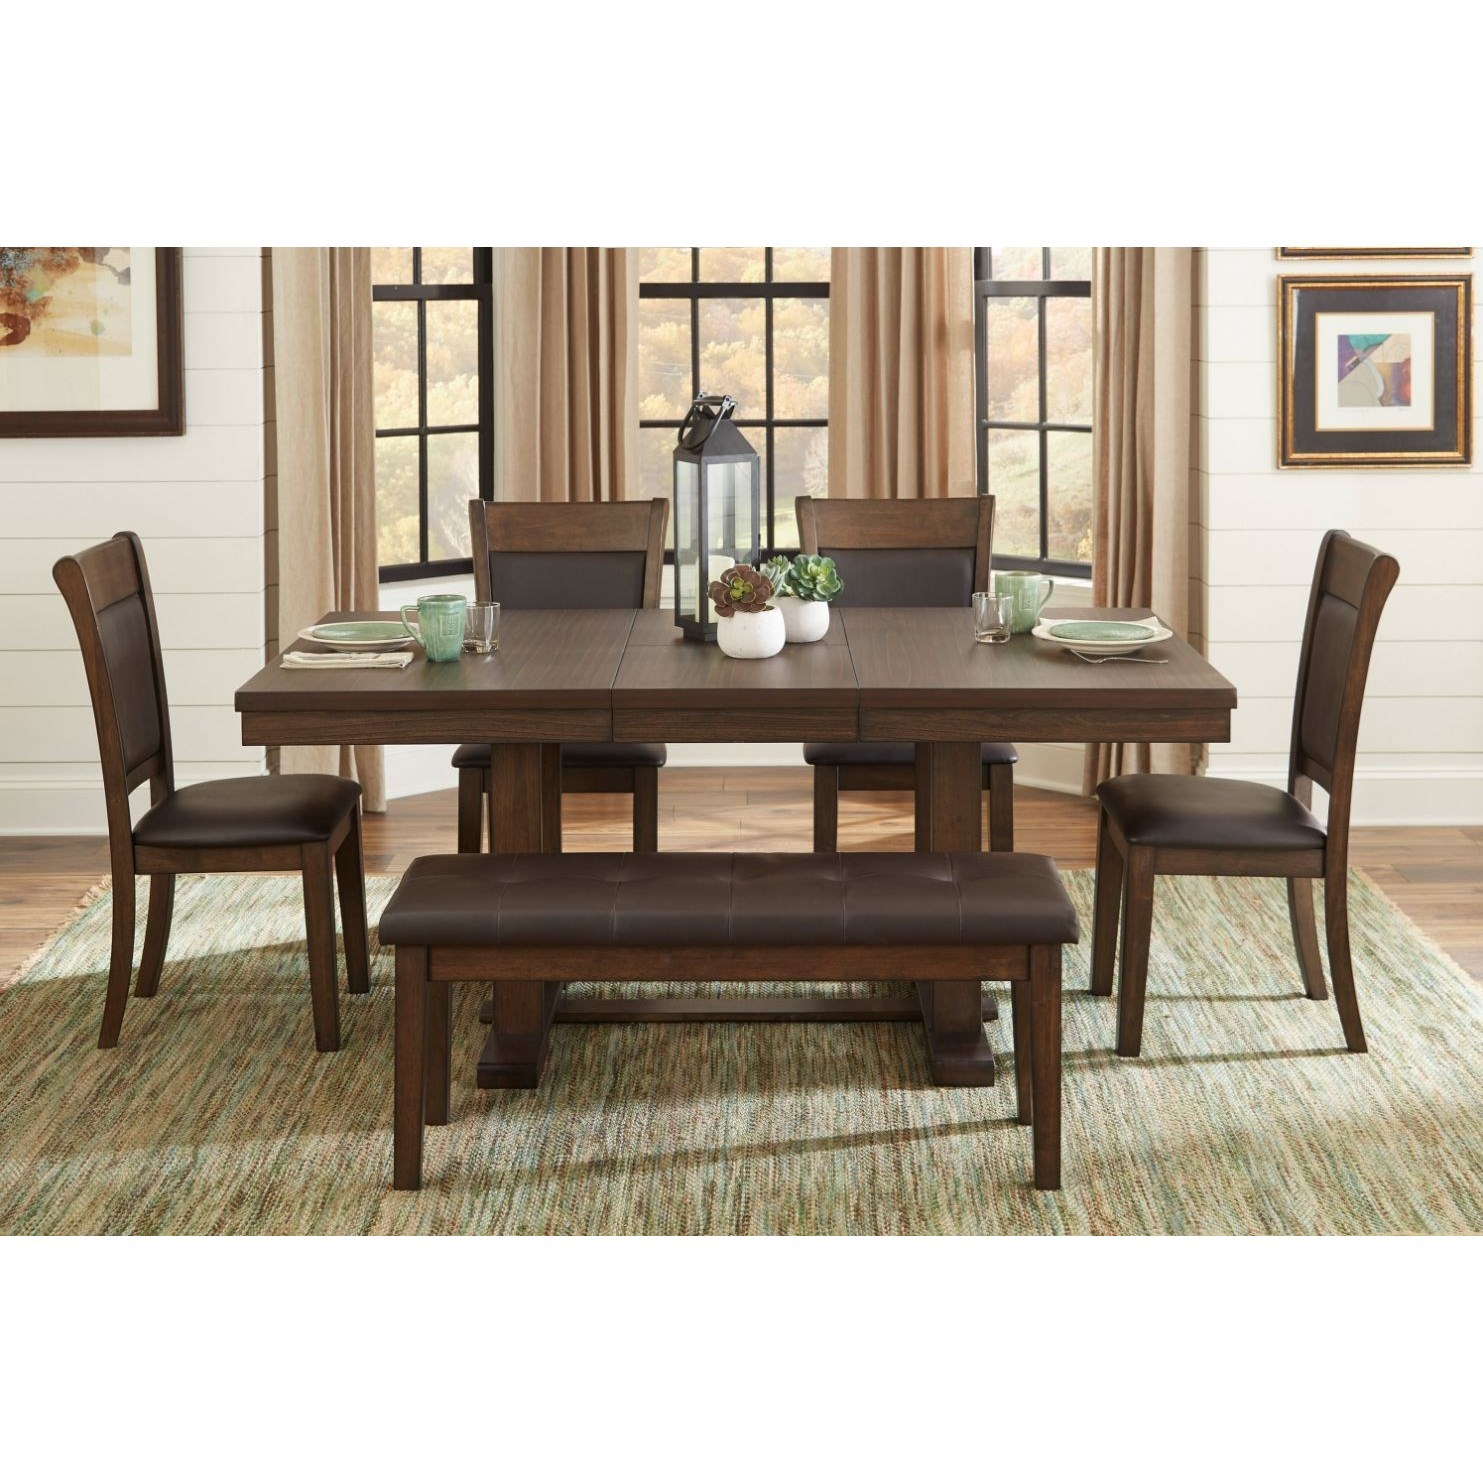 Wieland 6-Piece Table and Chair Set with Bench by Homelegance at Beck's Furniture